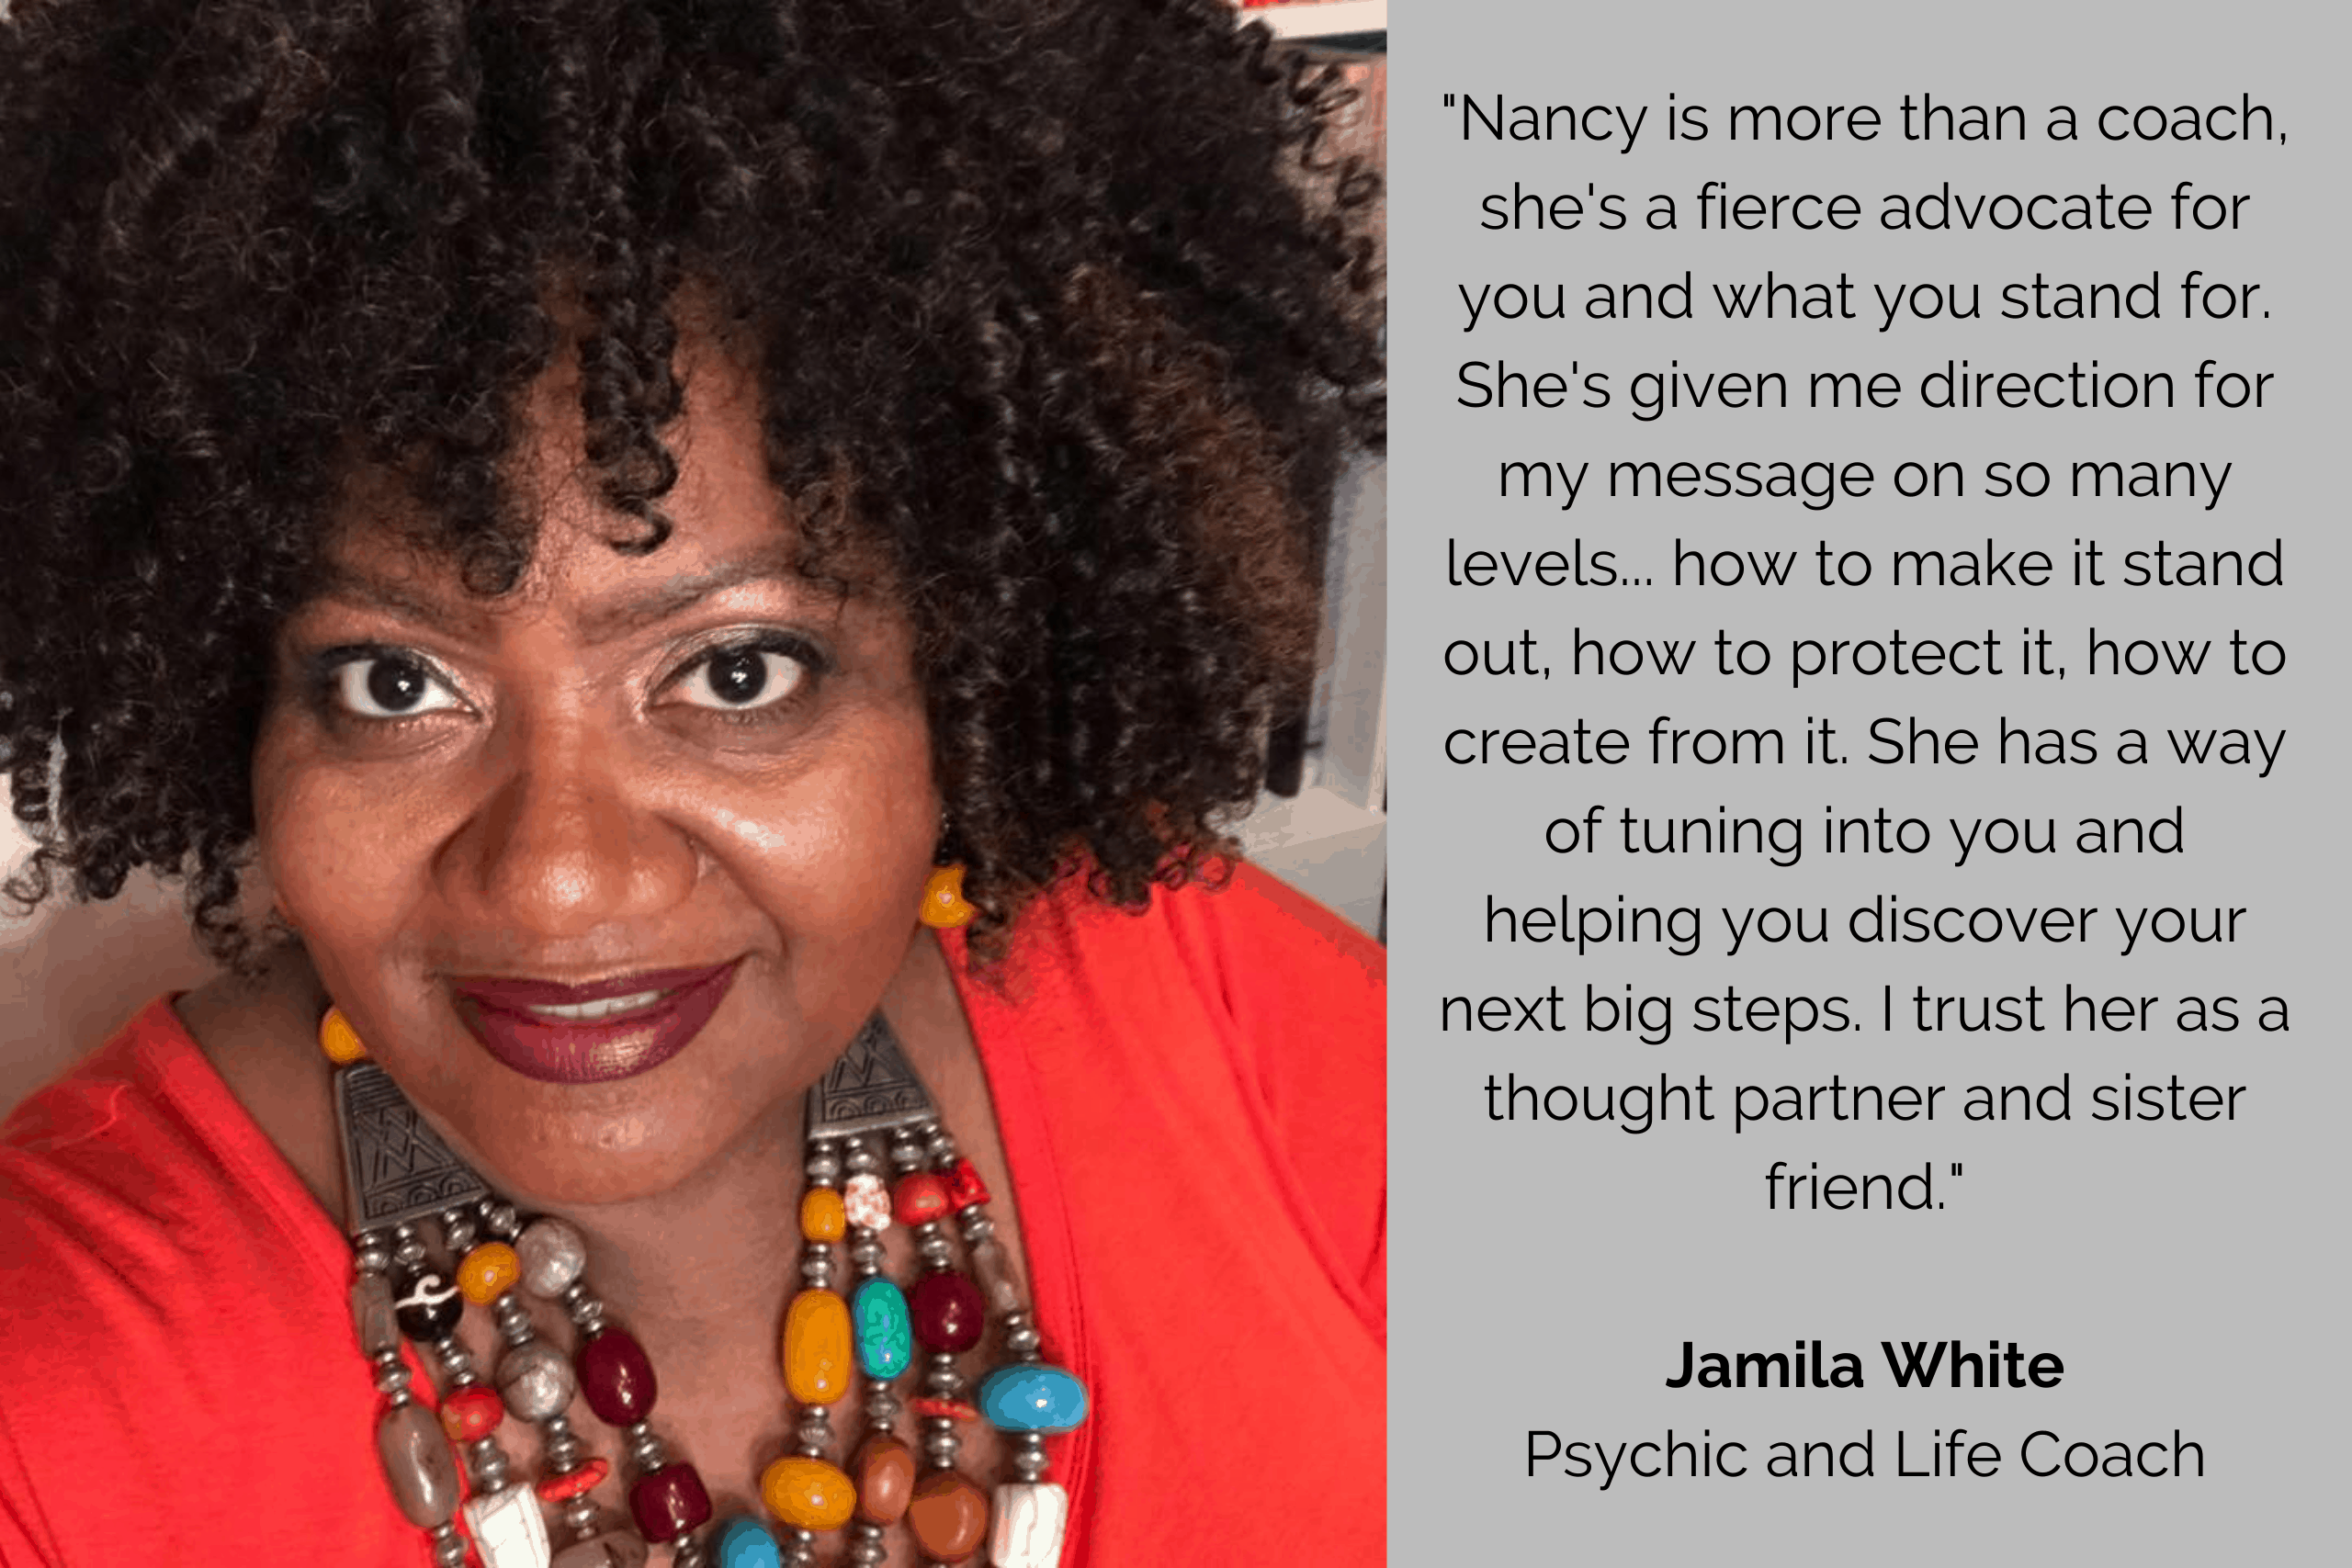 Jamila White, psychic and life coach, testimonial for Nancy Marmolejo